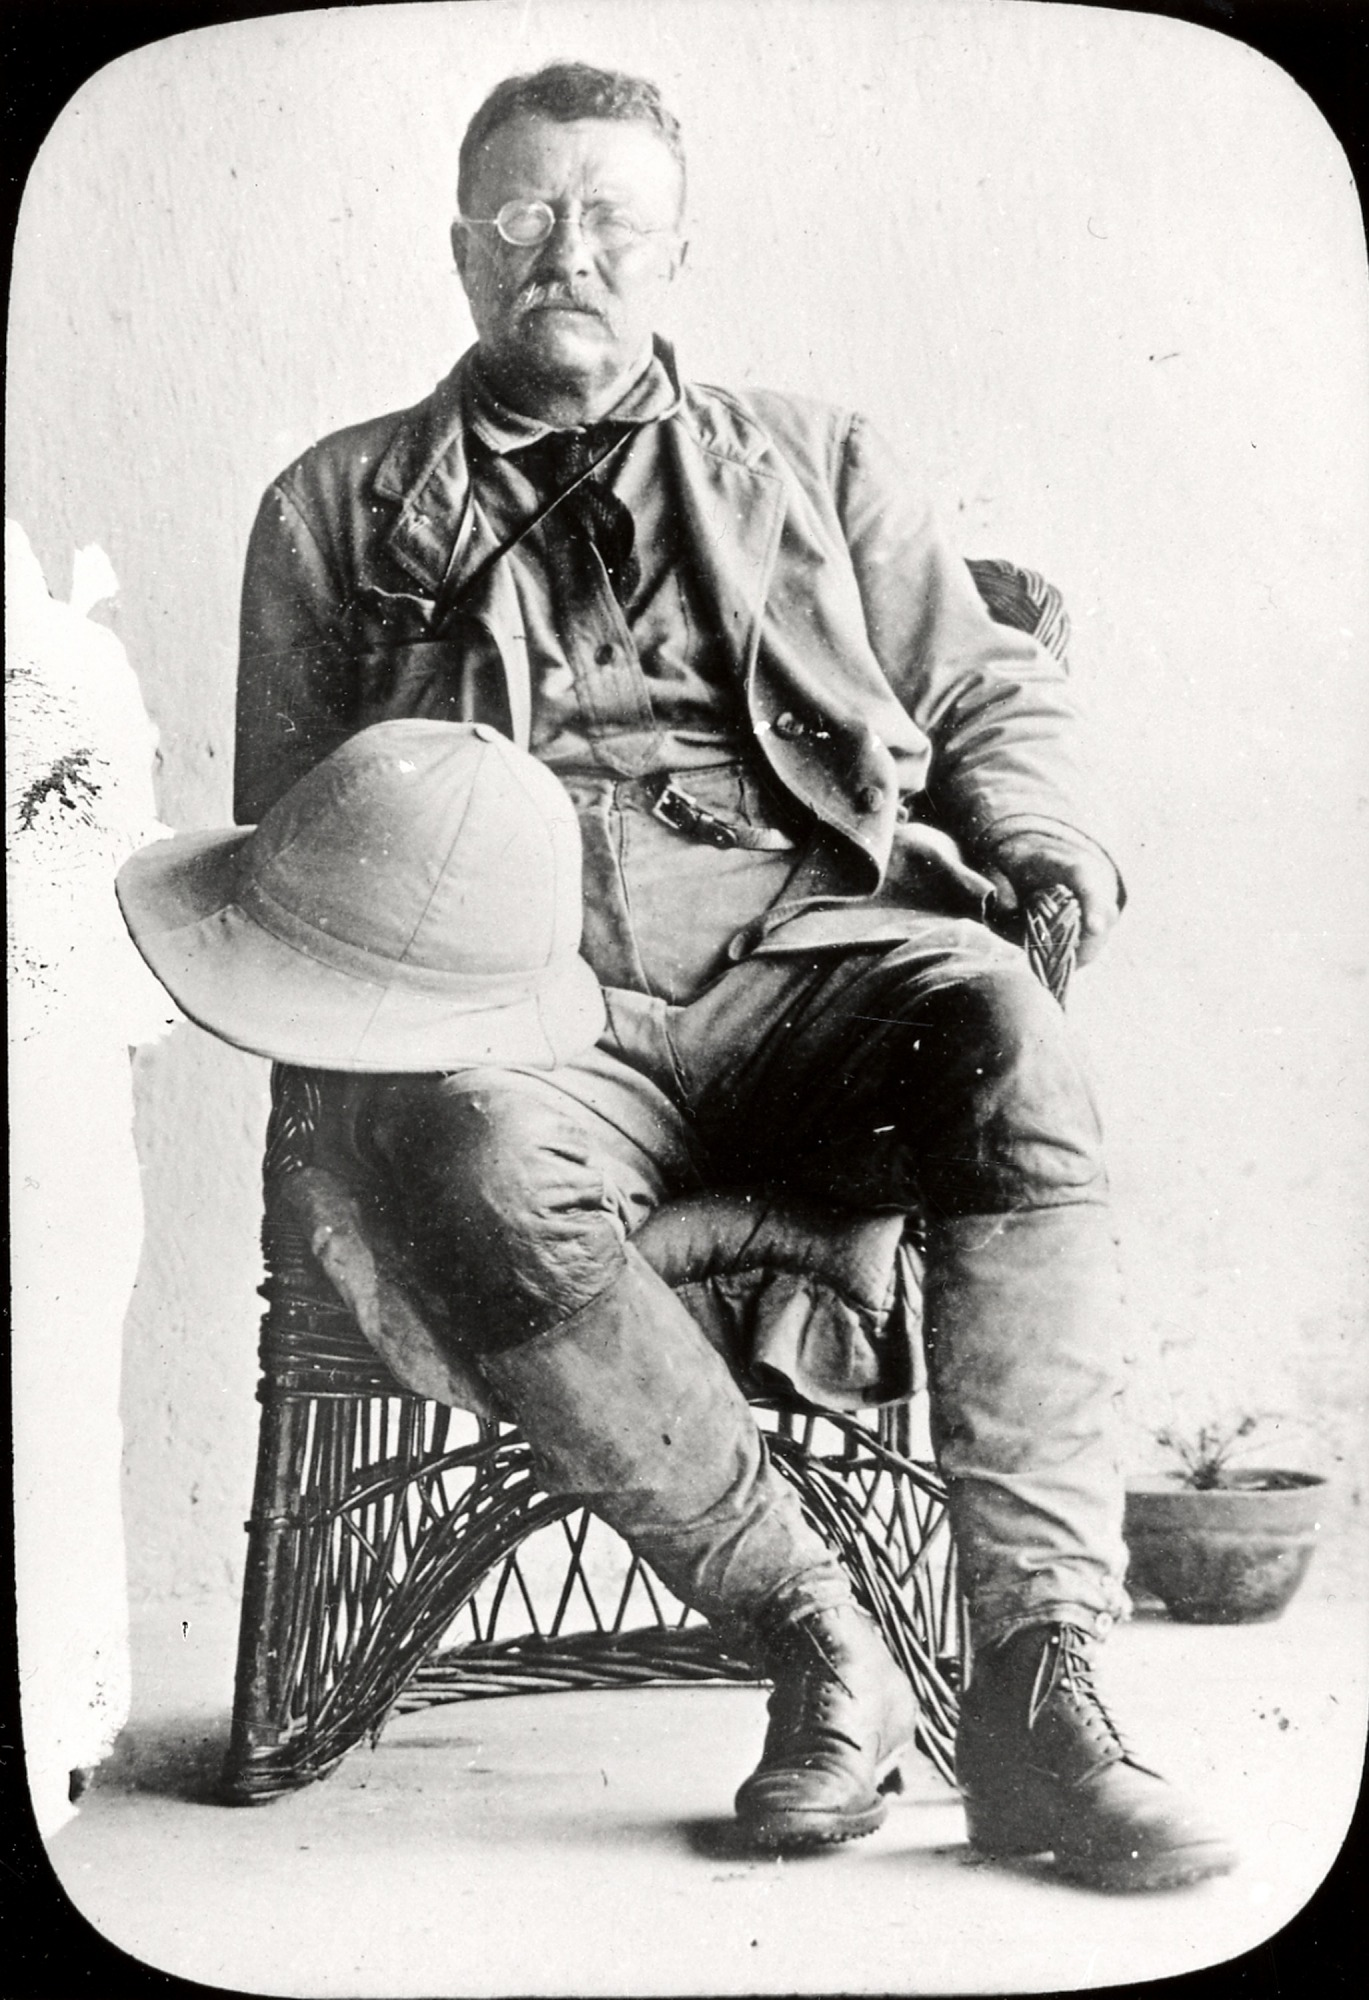 Theodore Roosevelt, by Unknown, c. early 1900s, Smithsonian Archives - History Div, 2002-32244.